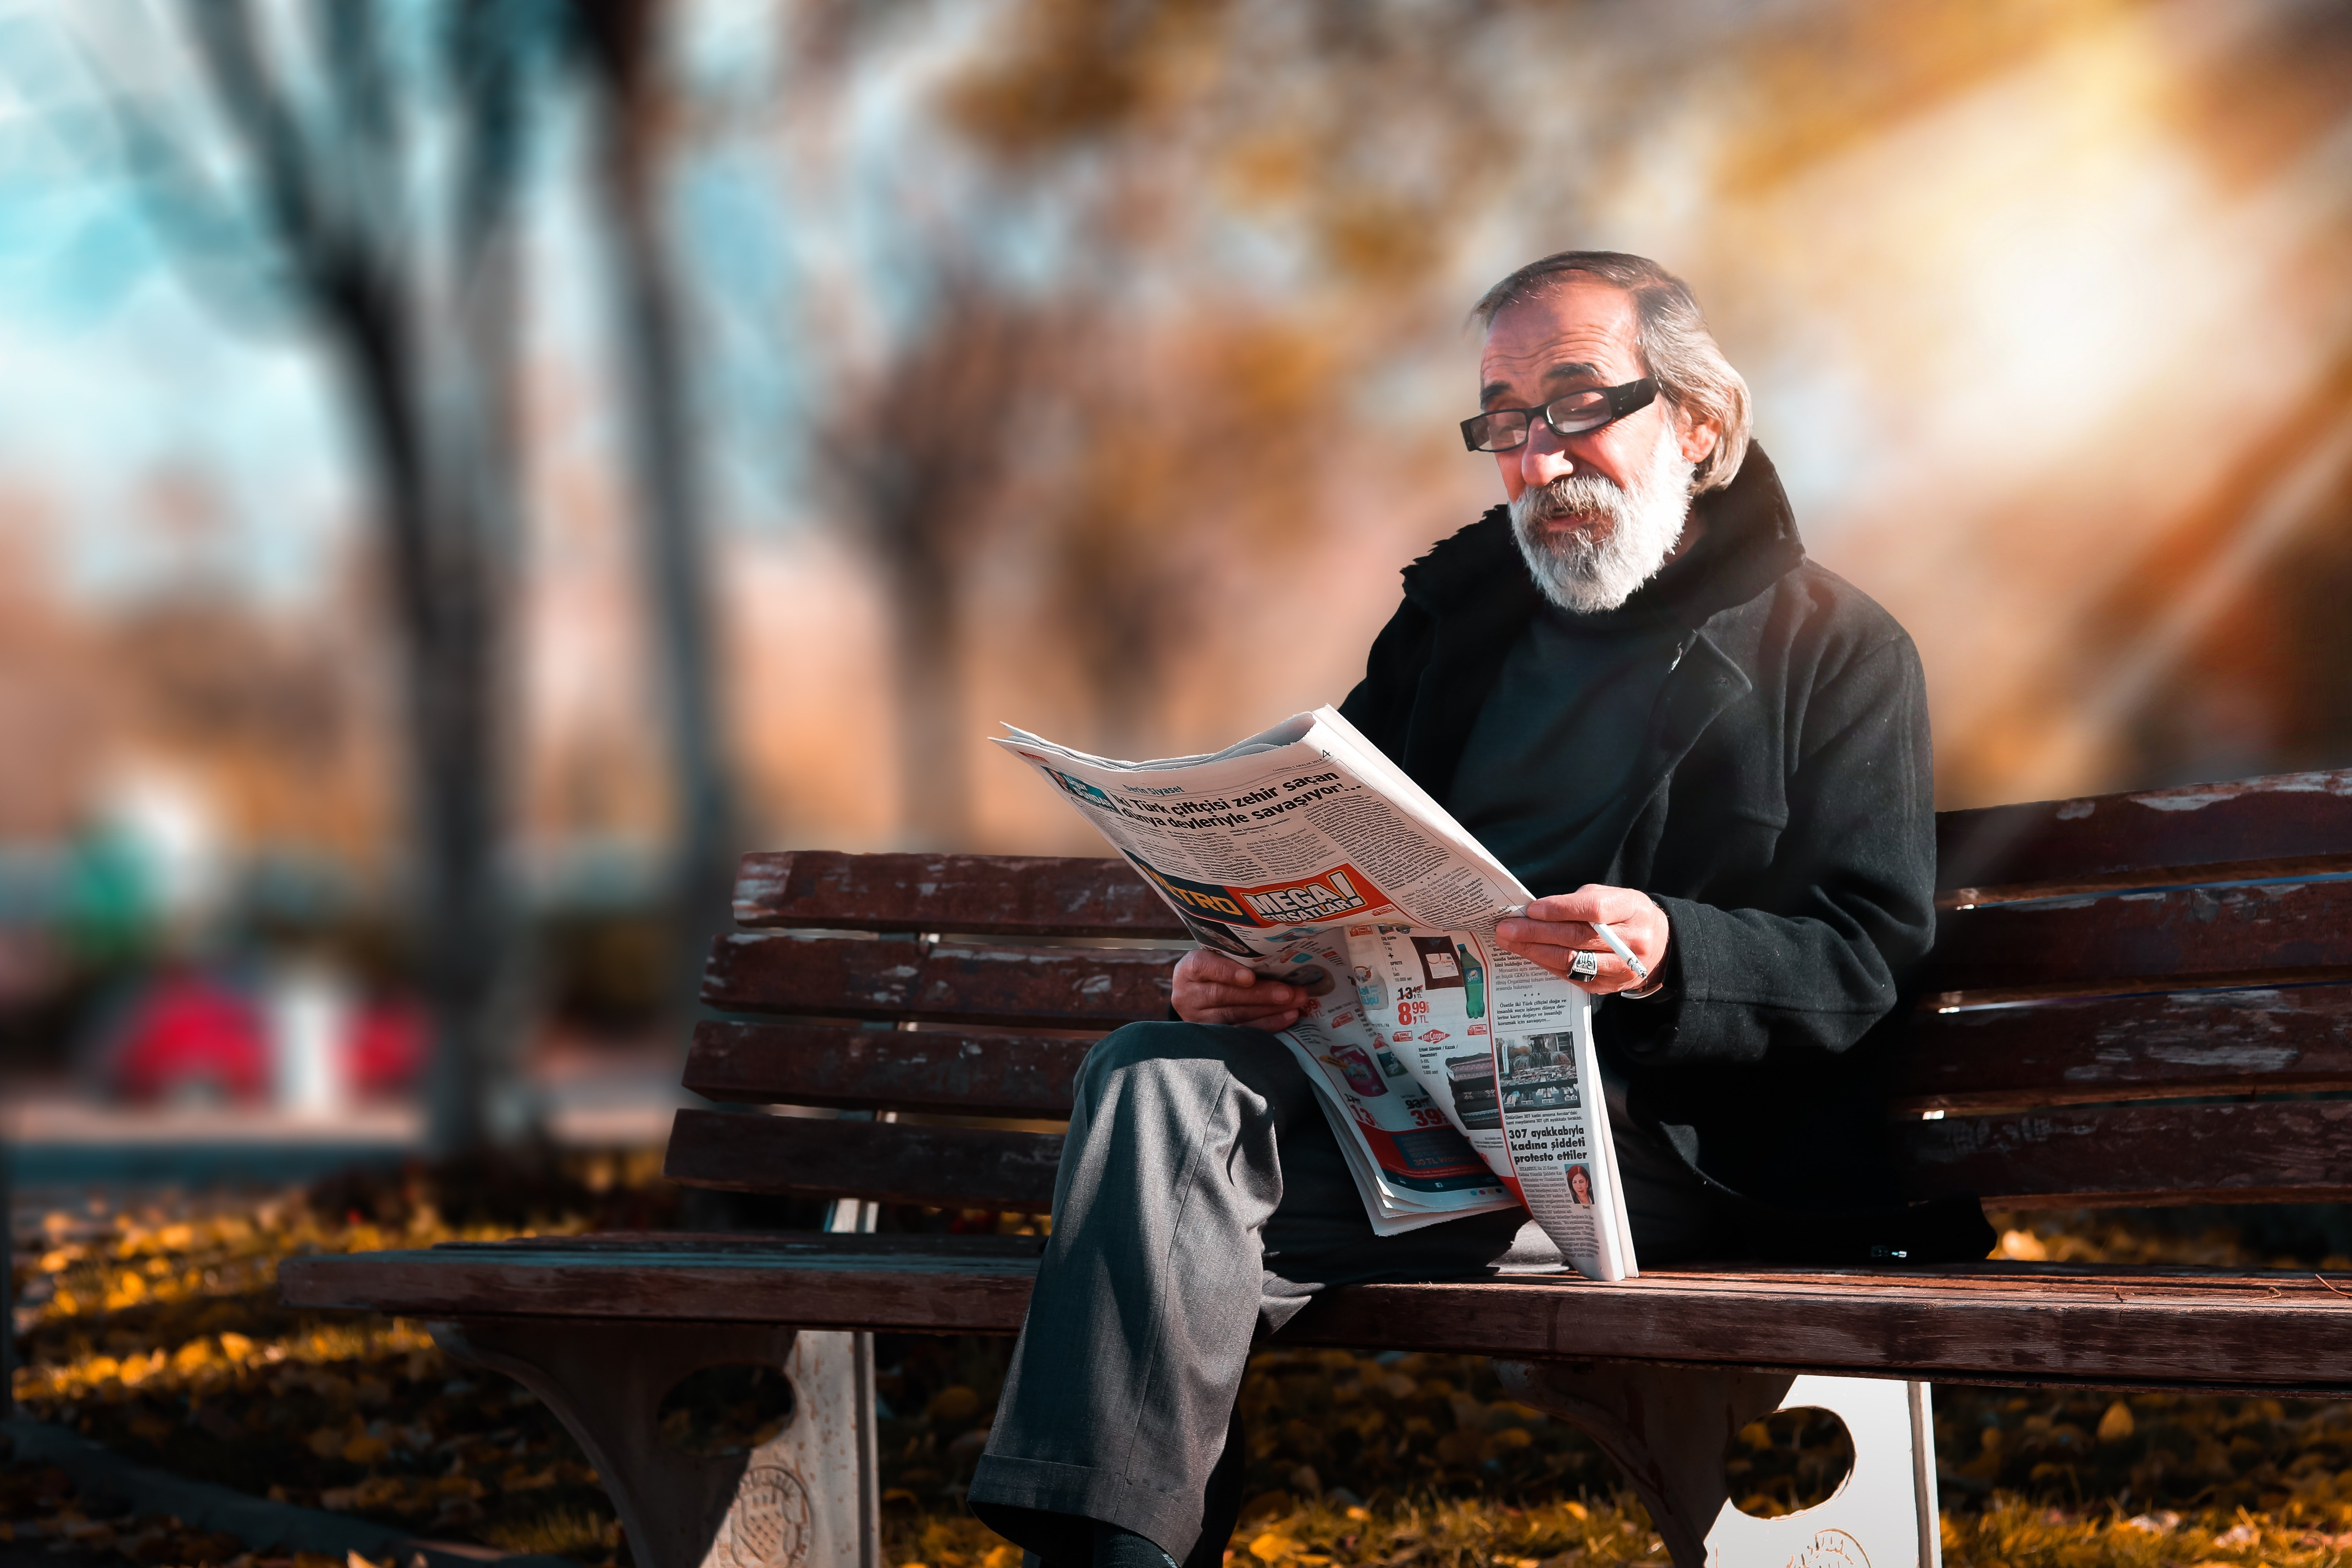 An old man reading a newspaper   Source: Pexels